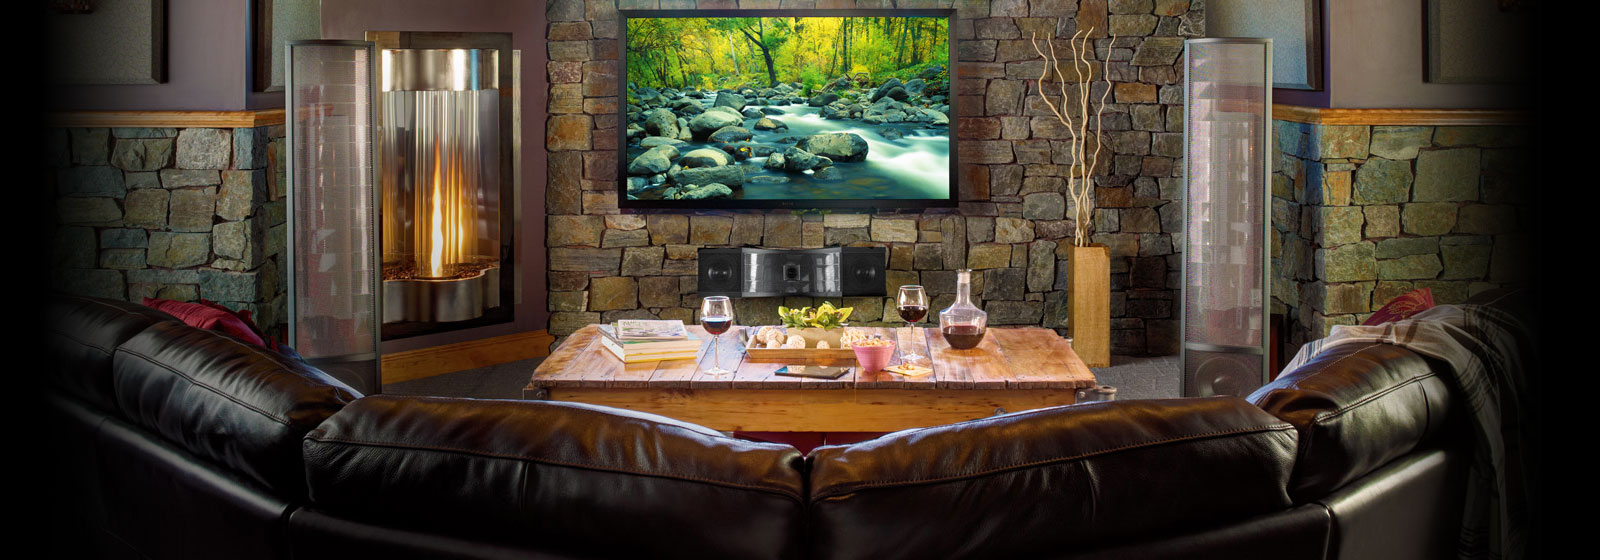 Magnolia Home Theater: Televisions, Blu-Ray and DVD Players